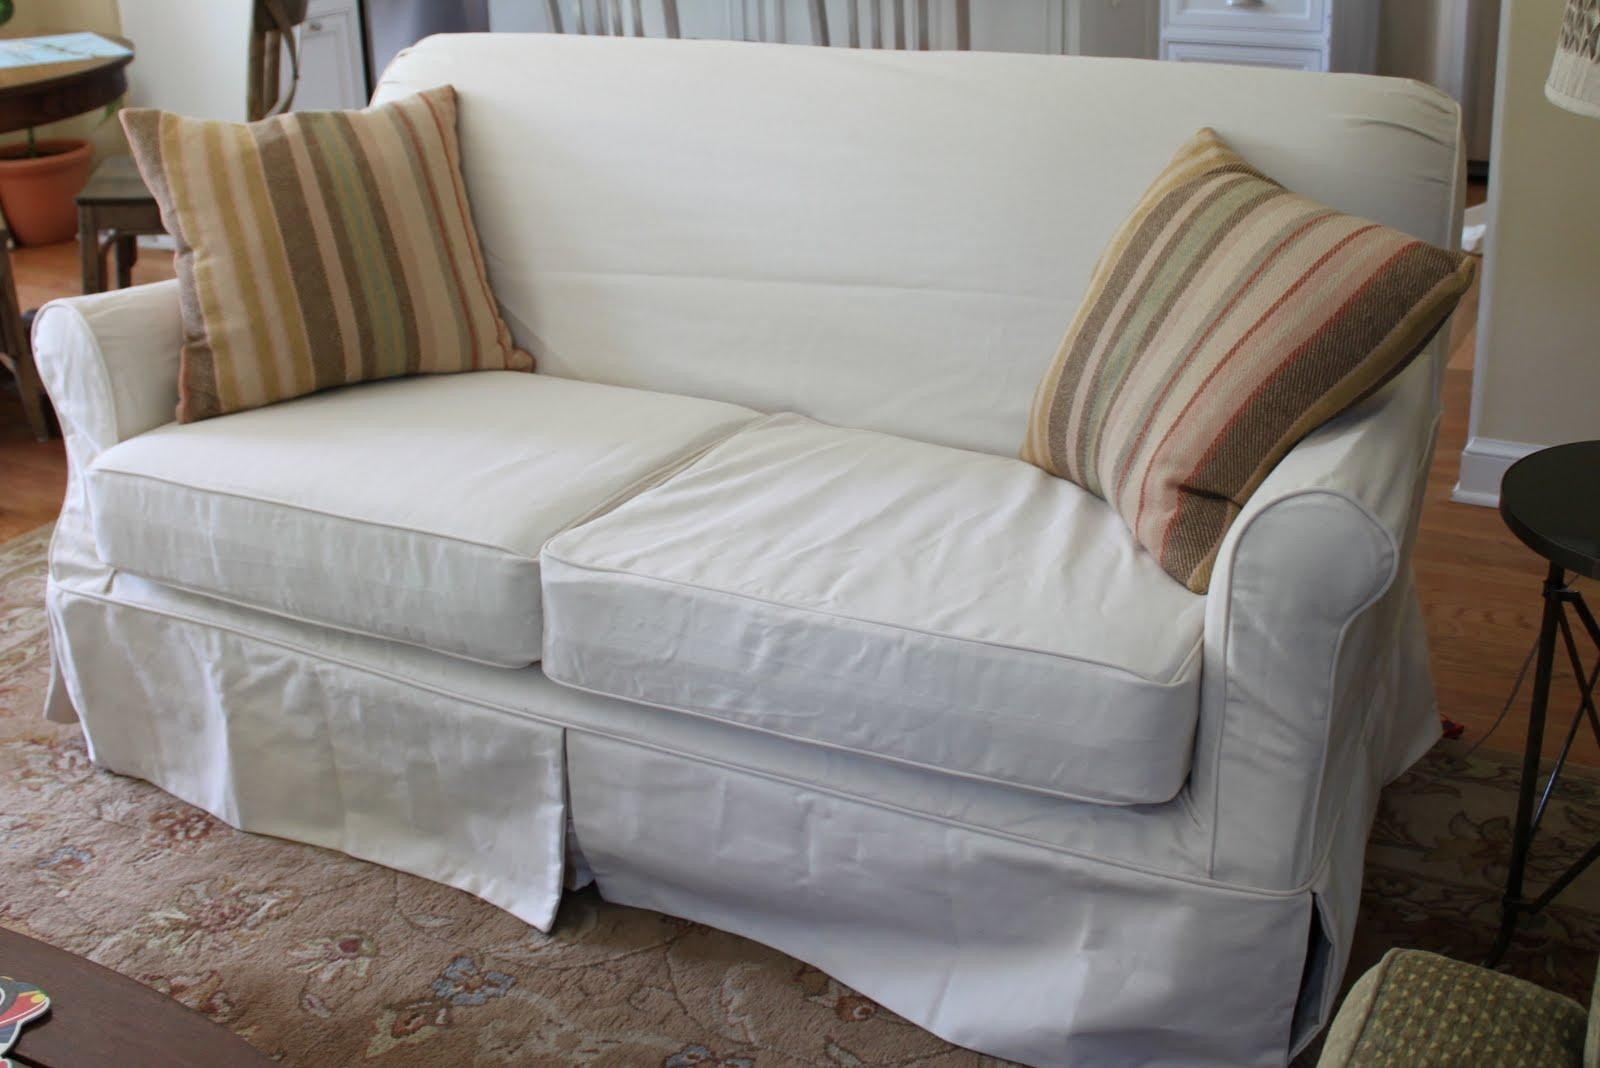 off white slipcover sofa marley 3 seater fabric bed with storage chaise covers related post from